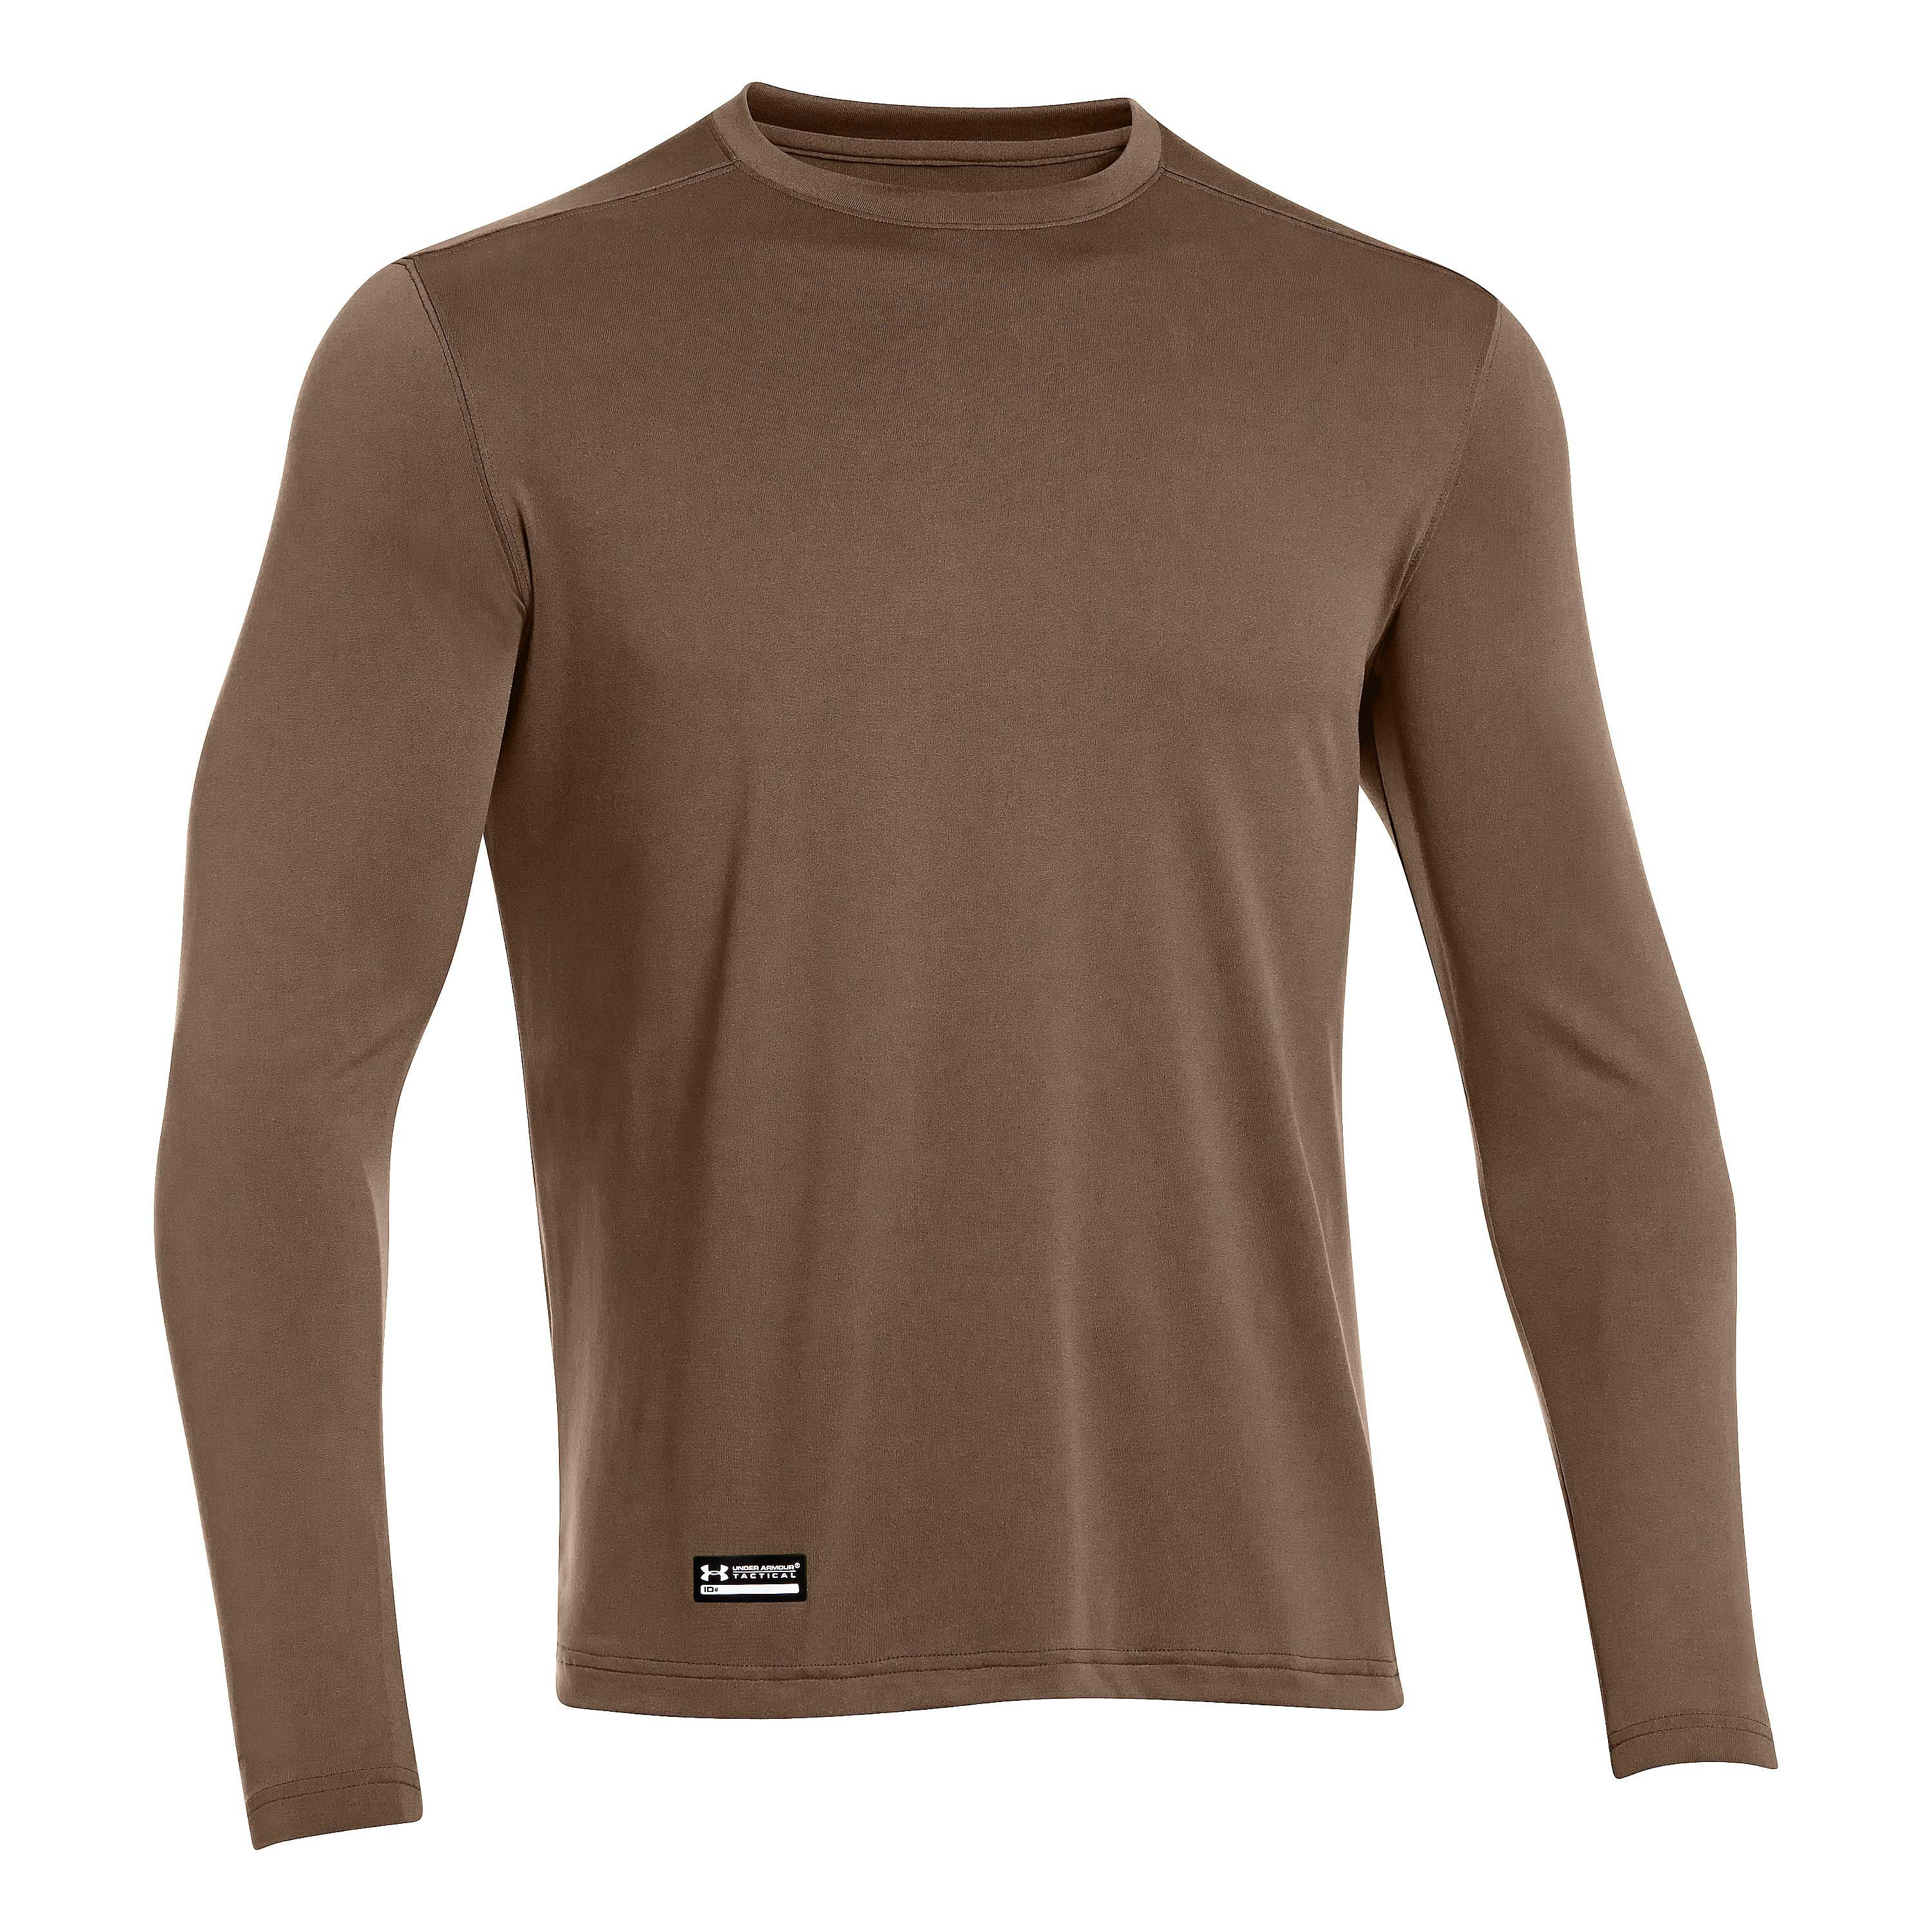 Langarmshirt Under Armour Tactical Heat Braun